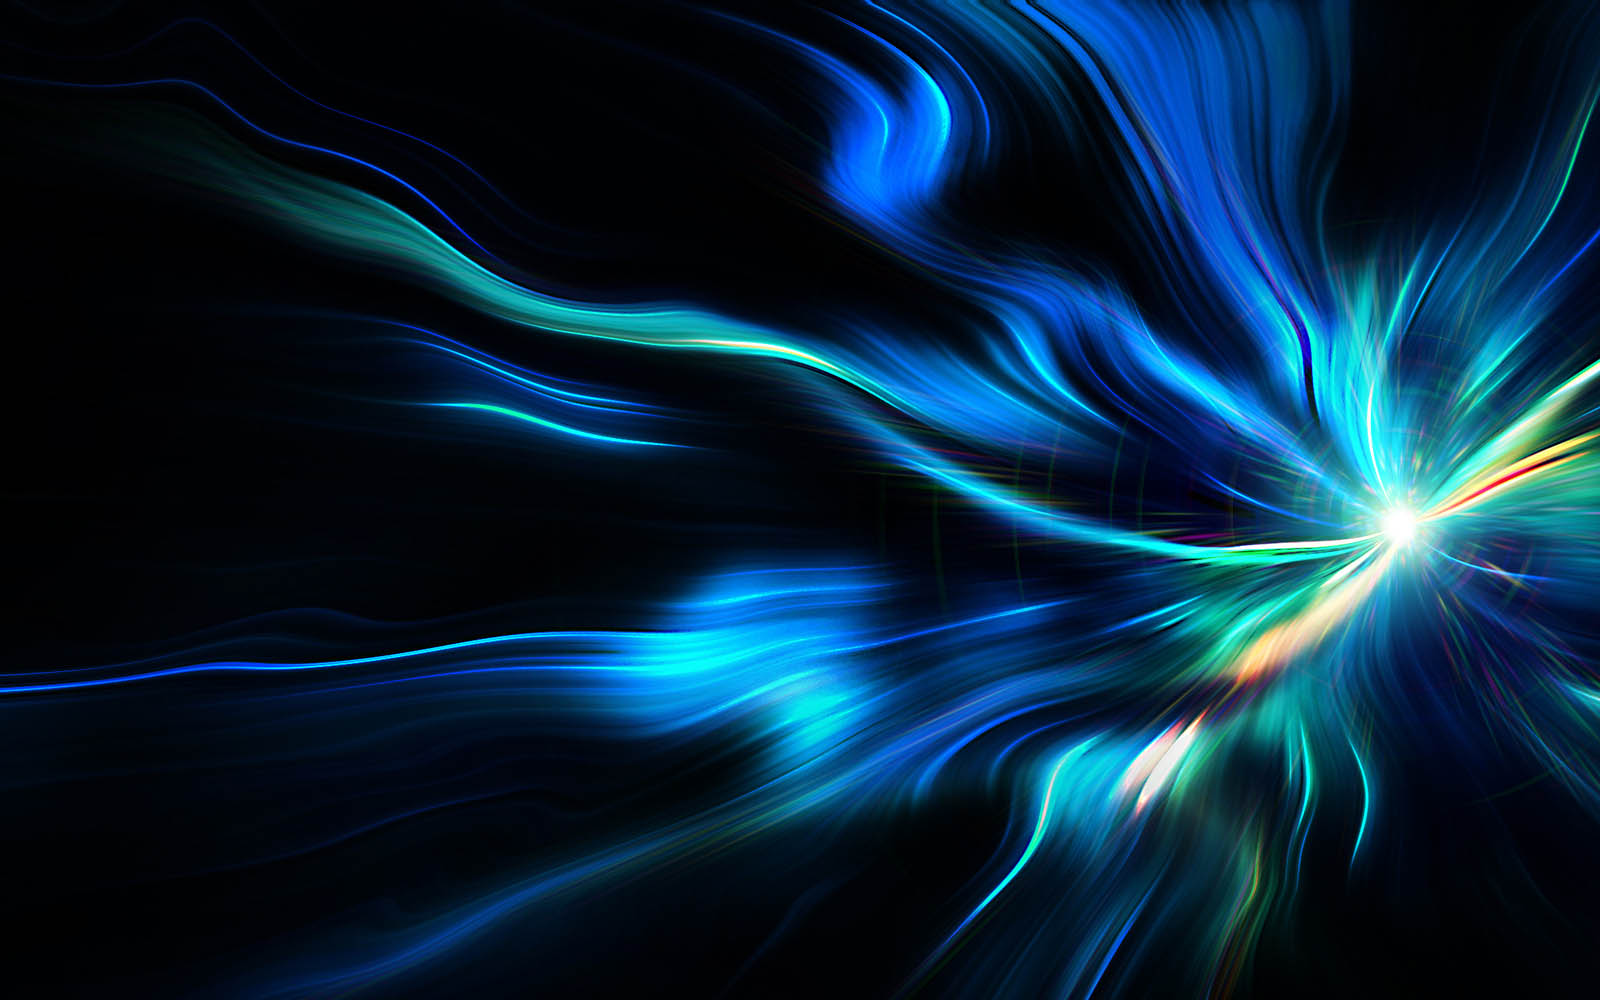 Wallpapers shining 3d wallpapers for 3d hd wallpapers